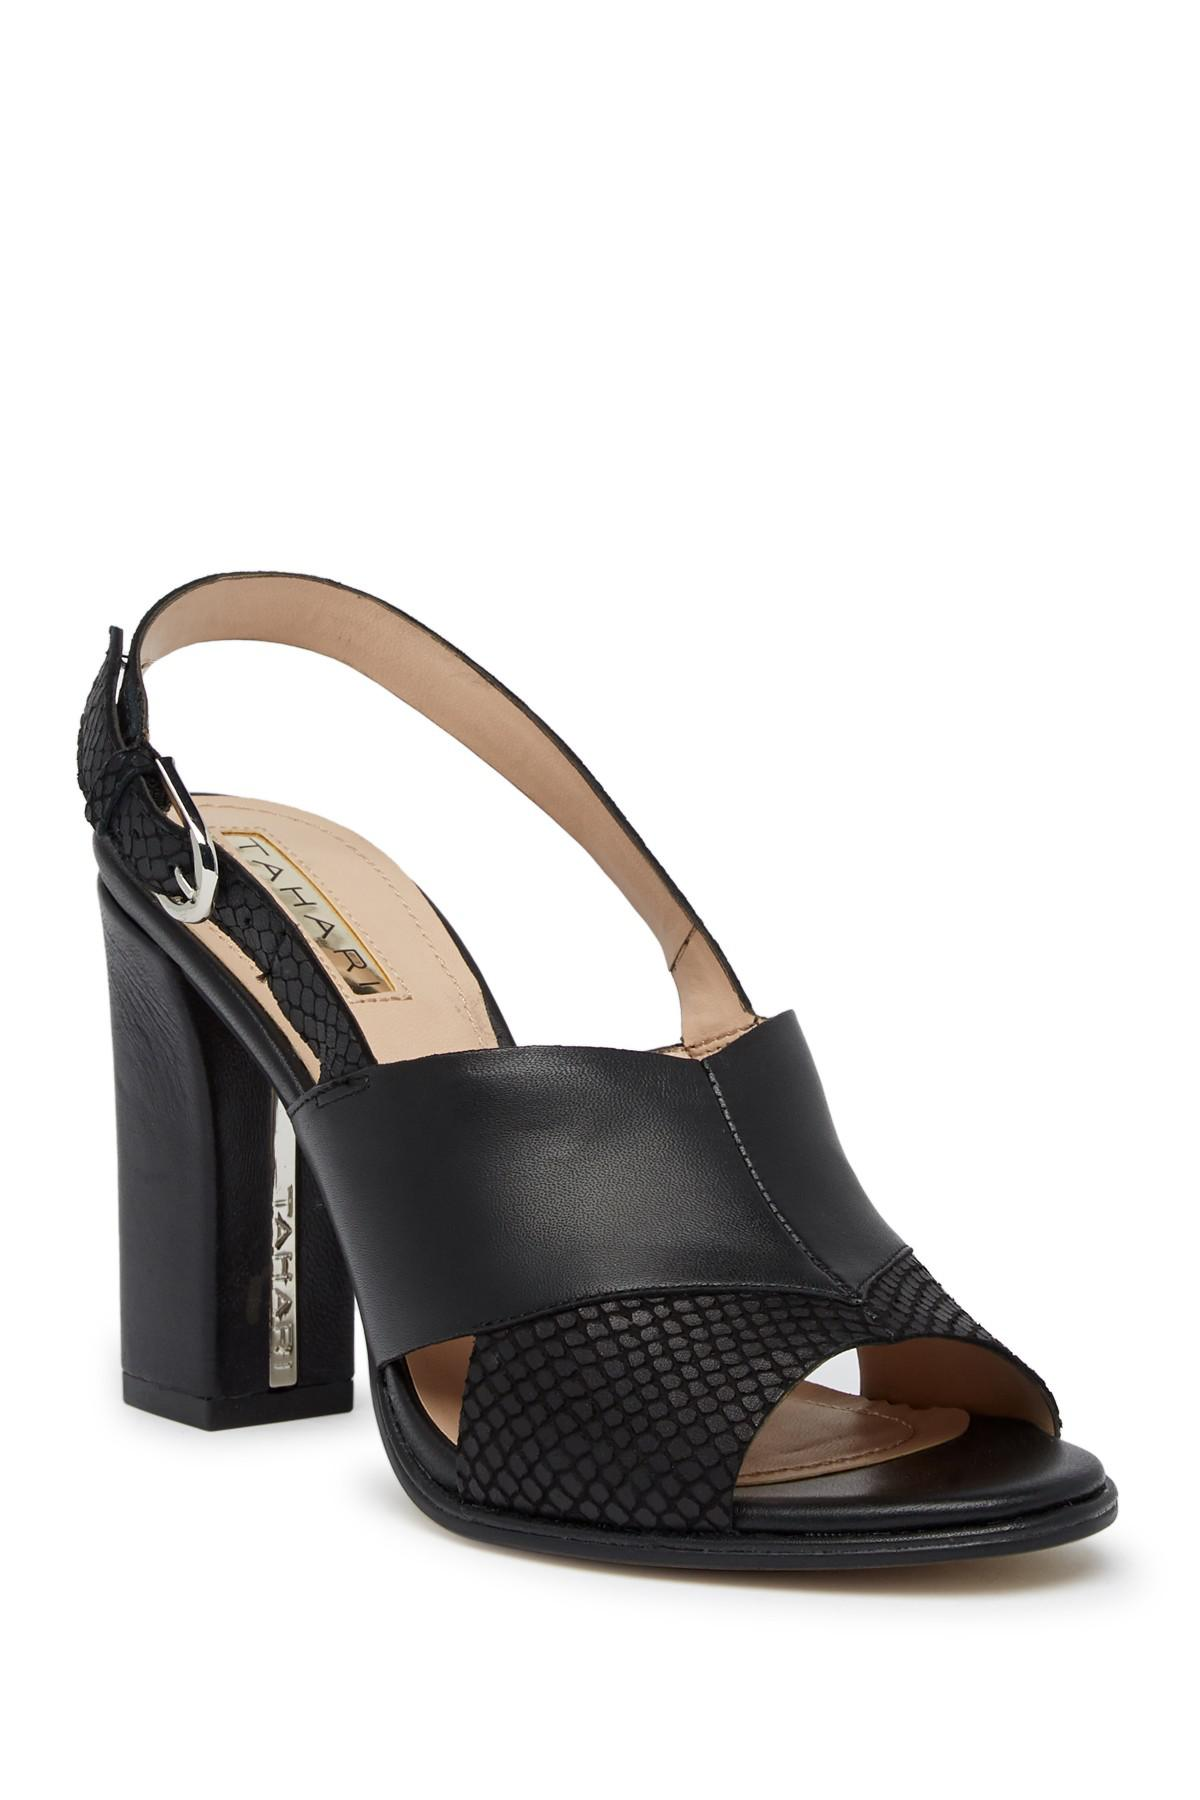 Tahari Kingston Sandal 1ppTnYXXe